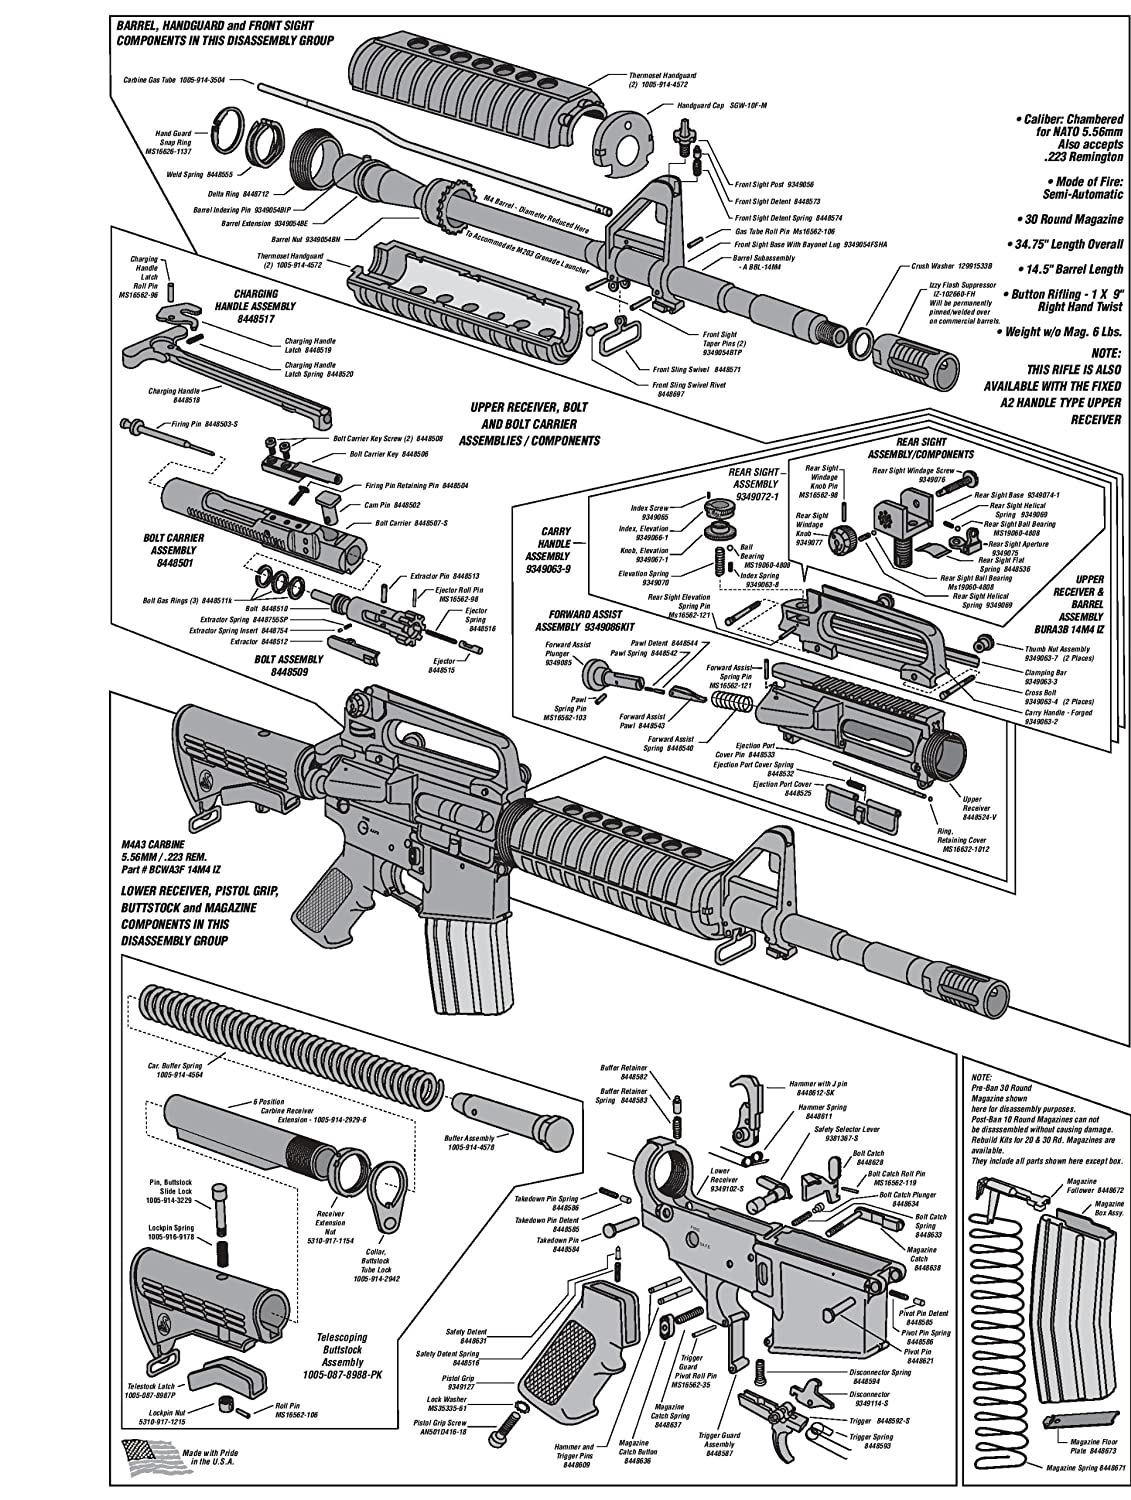 Description Of Each Part Of The Ar15